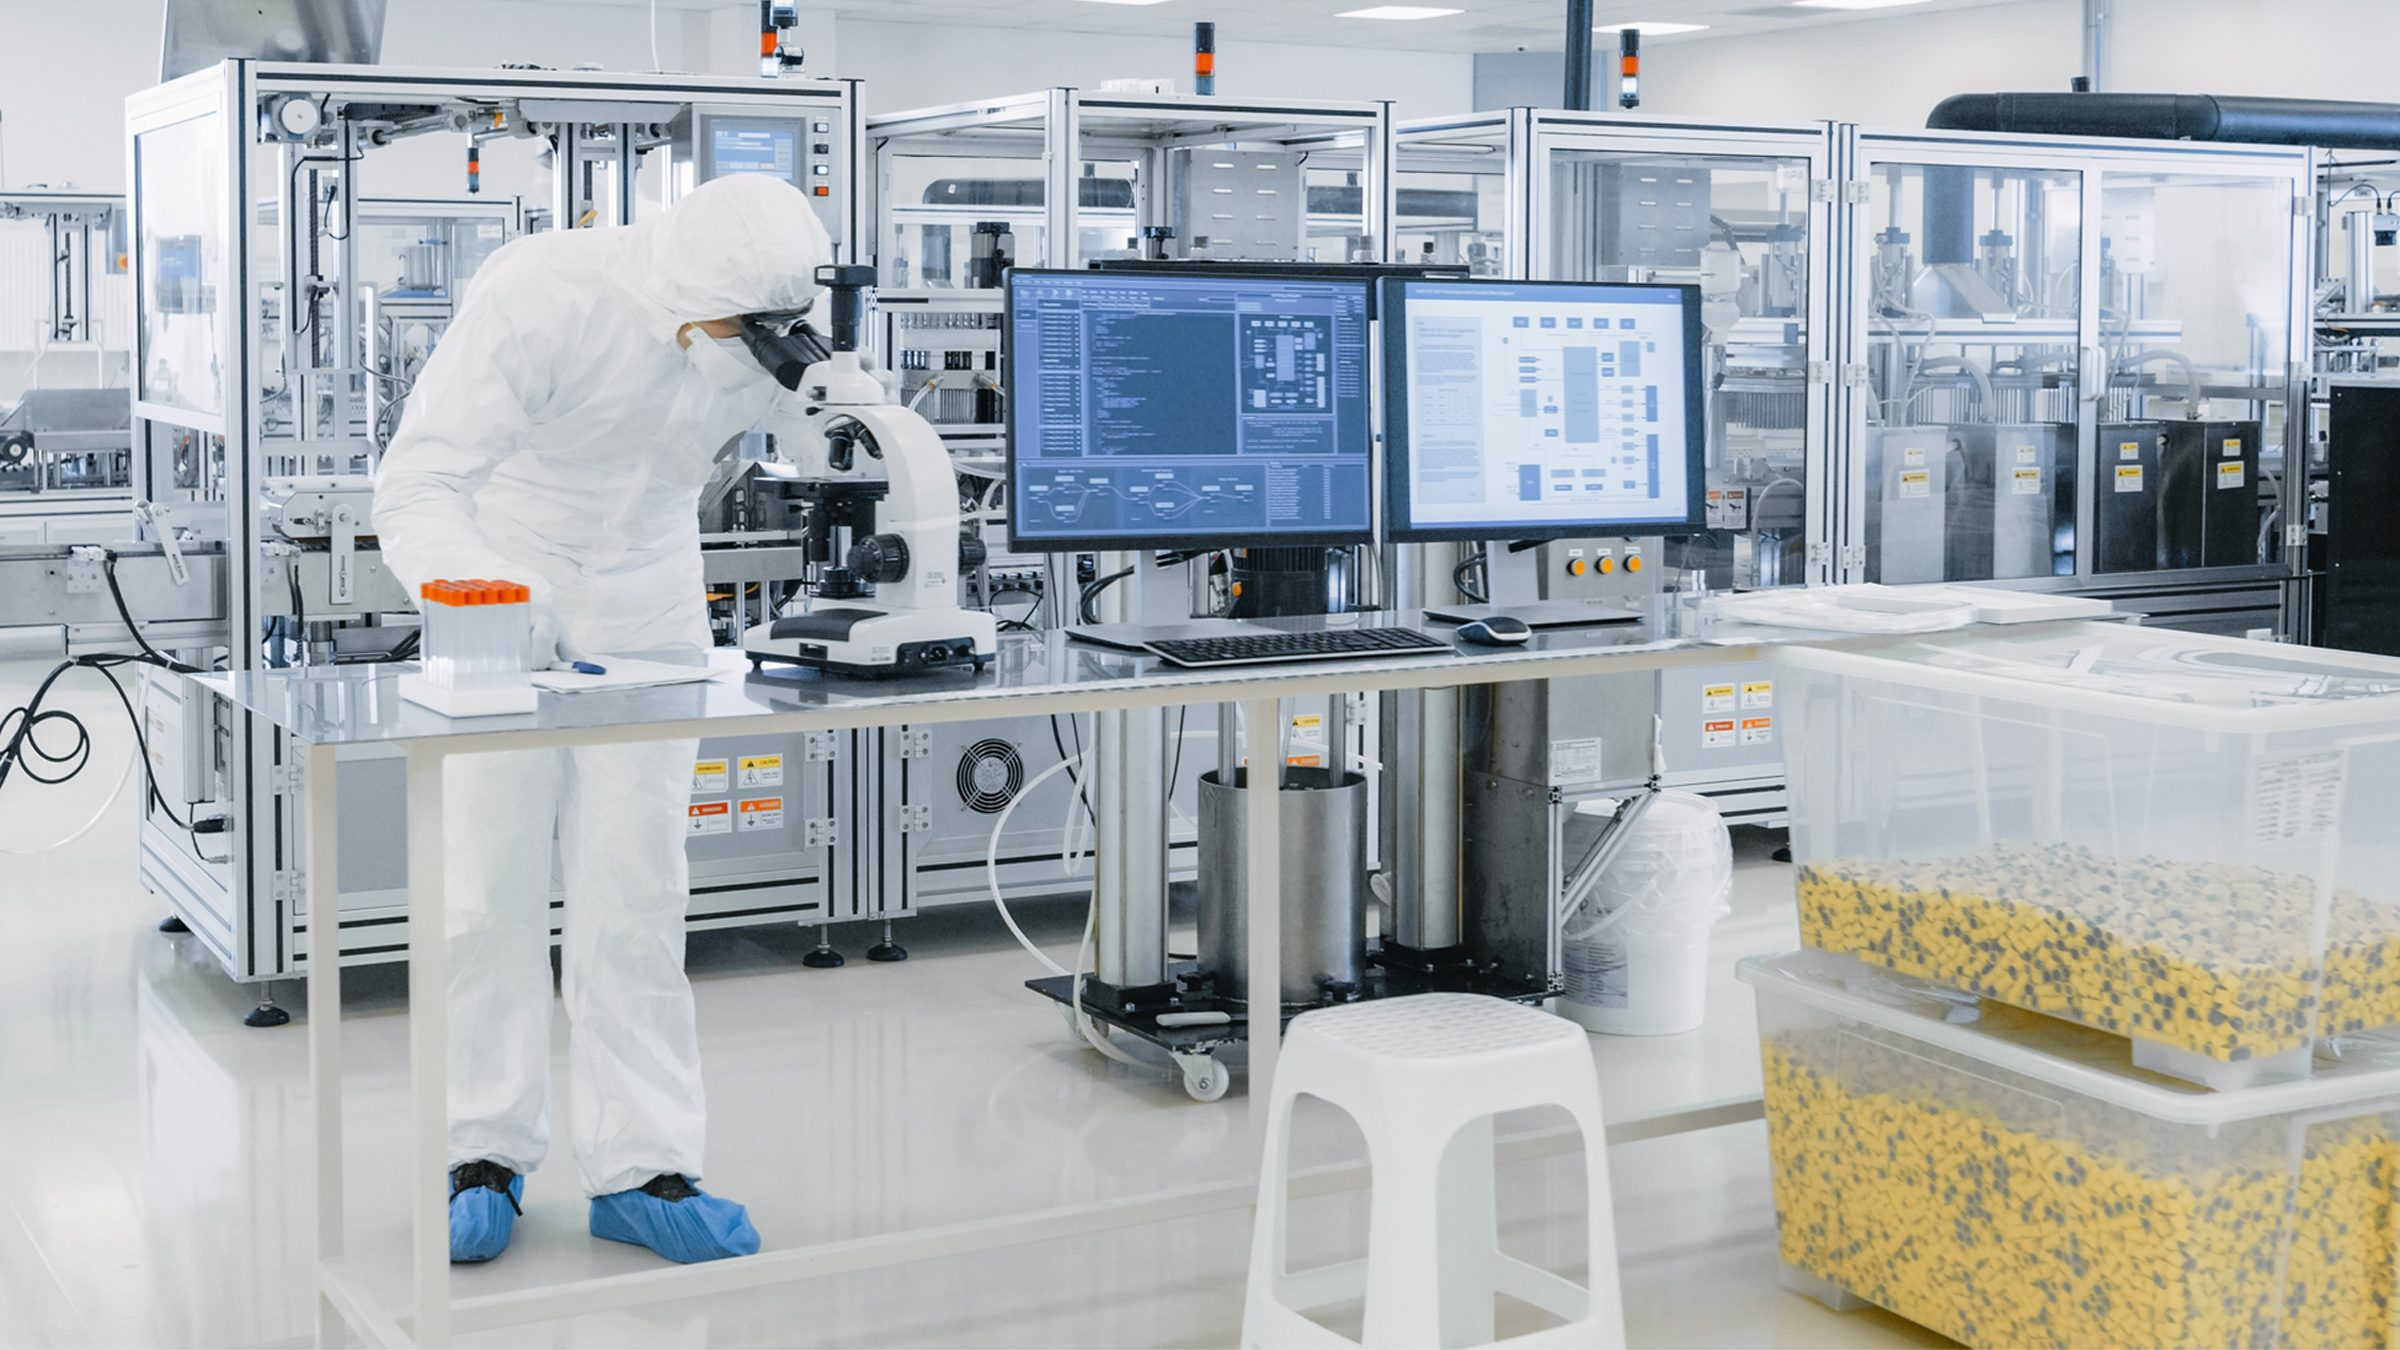 Man working in cleanroom production area 2400x1350px